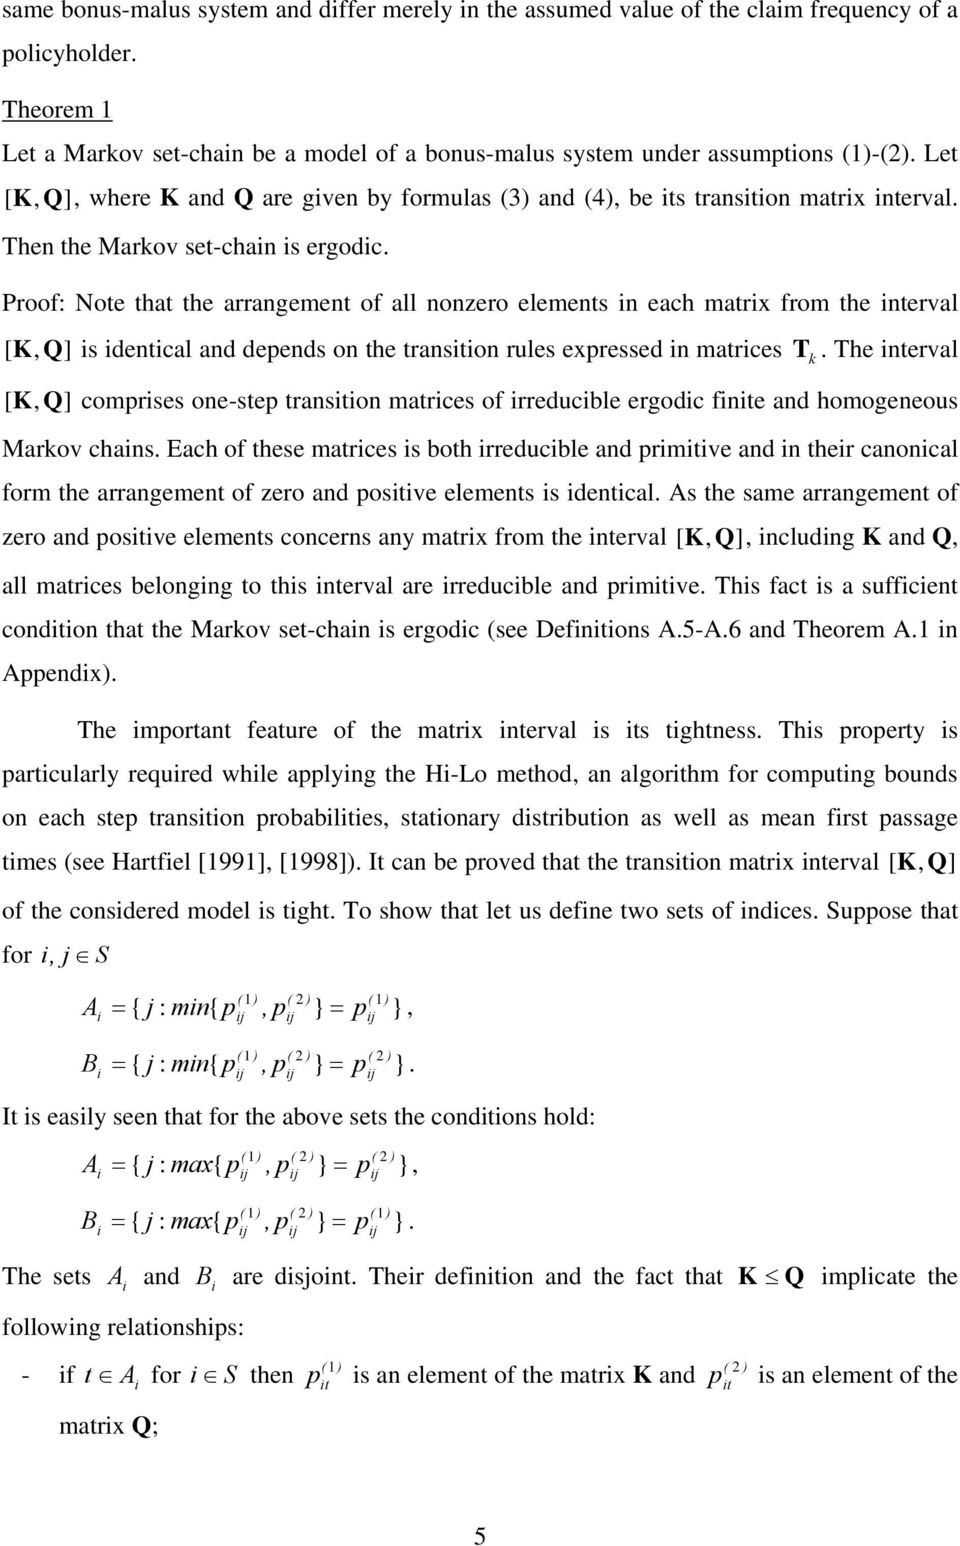 Proof: ote that the arrangement of all nonzero elements n each matrx from the nterval [ K, [ K, s dentcal and depends on the transton rules expressed n matrces.